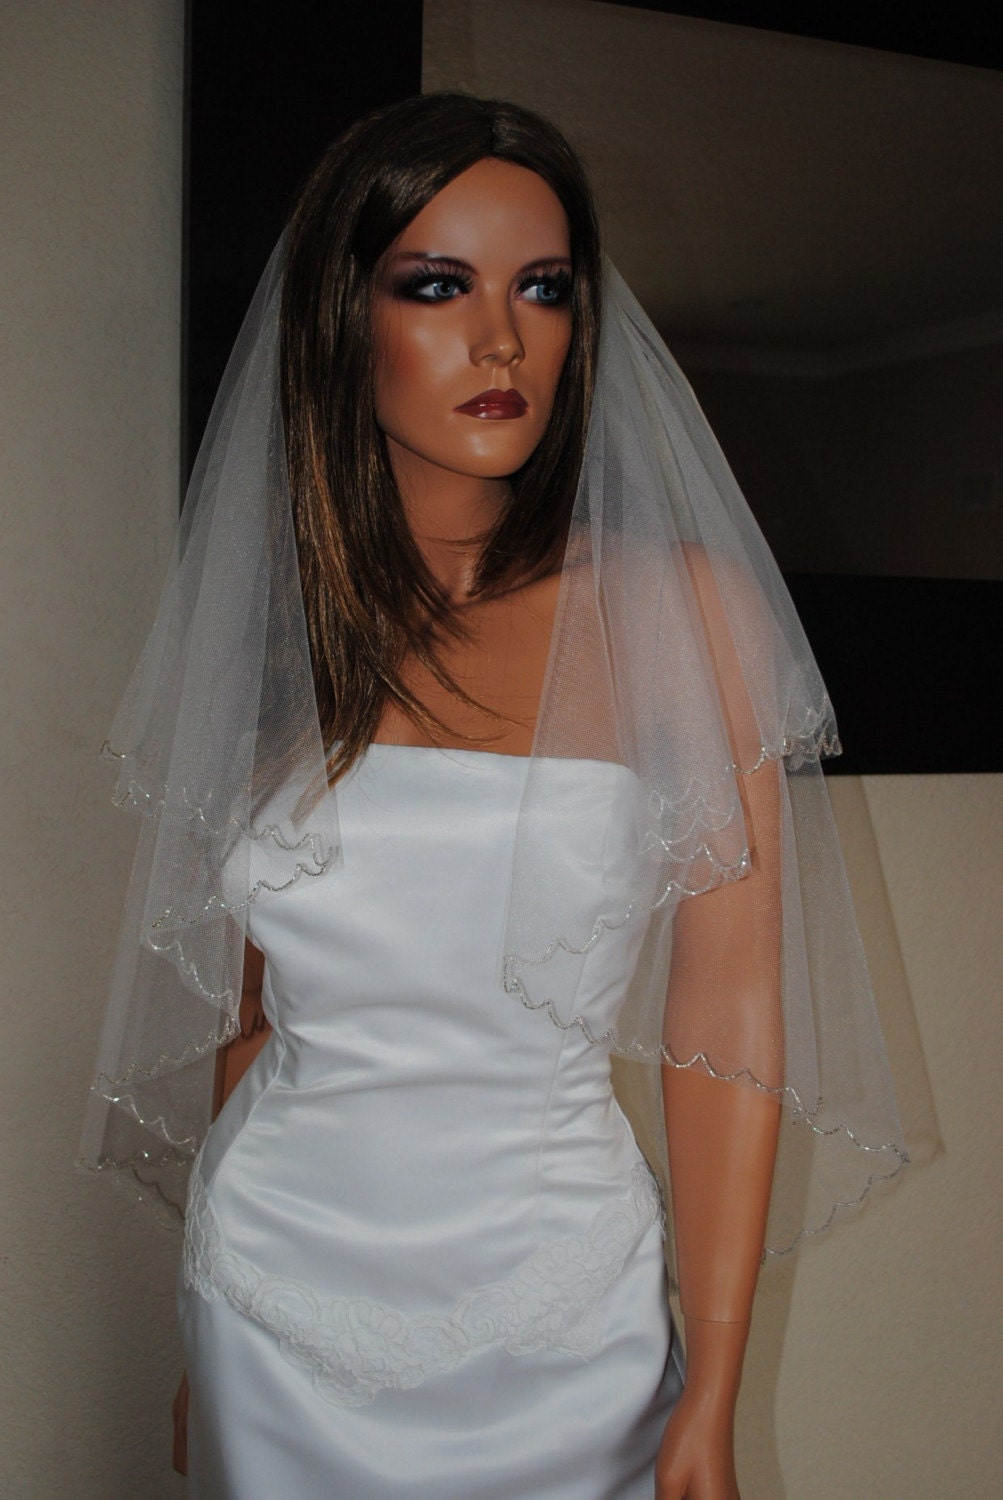 Two Tier Fingertip Veil with Dangling Beads in White or Ivory